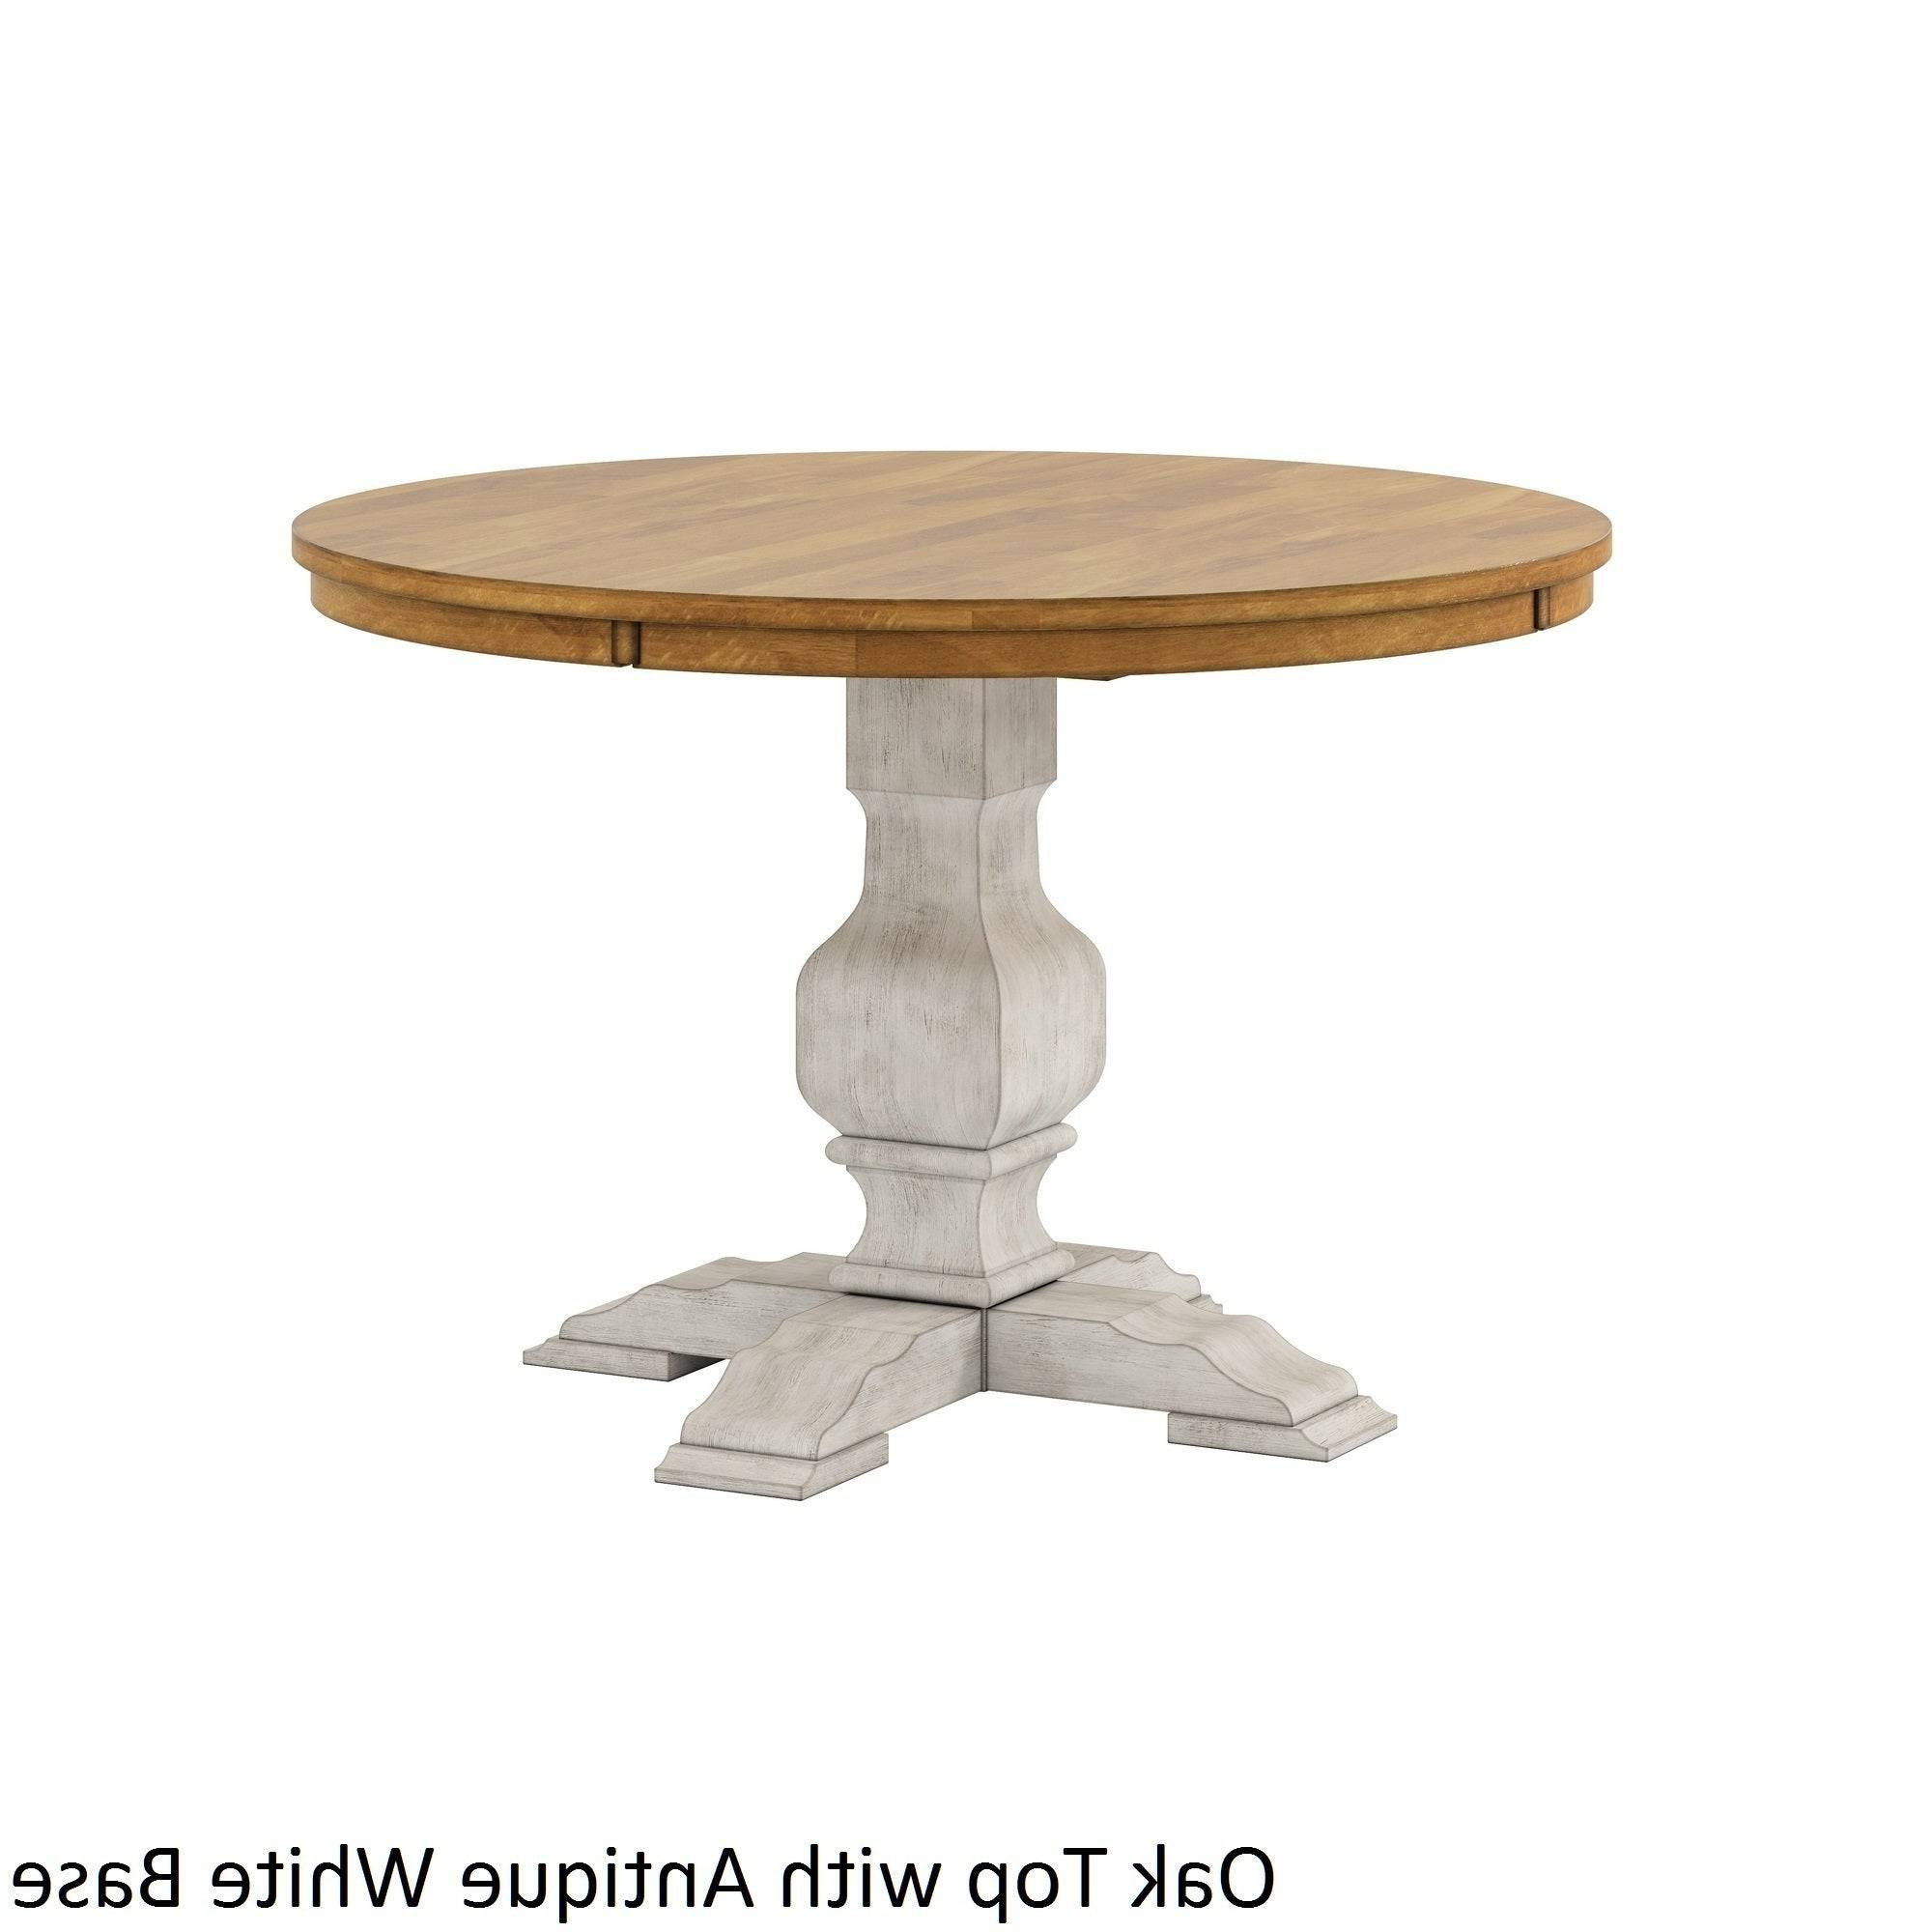 Solid Wood Circular Dining Tables White Within Best And Newest Likable Round Dining Table Wood Top Splendid Furniture Room (View 20 of 30)